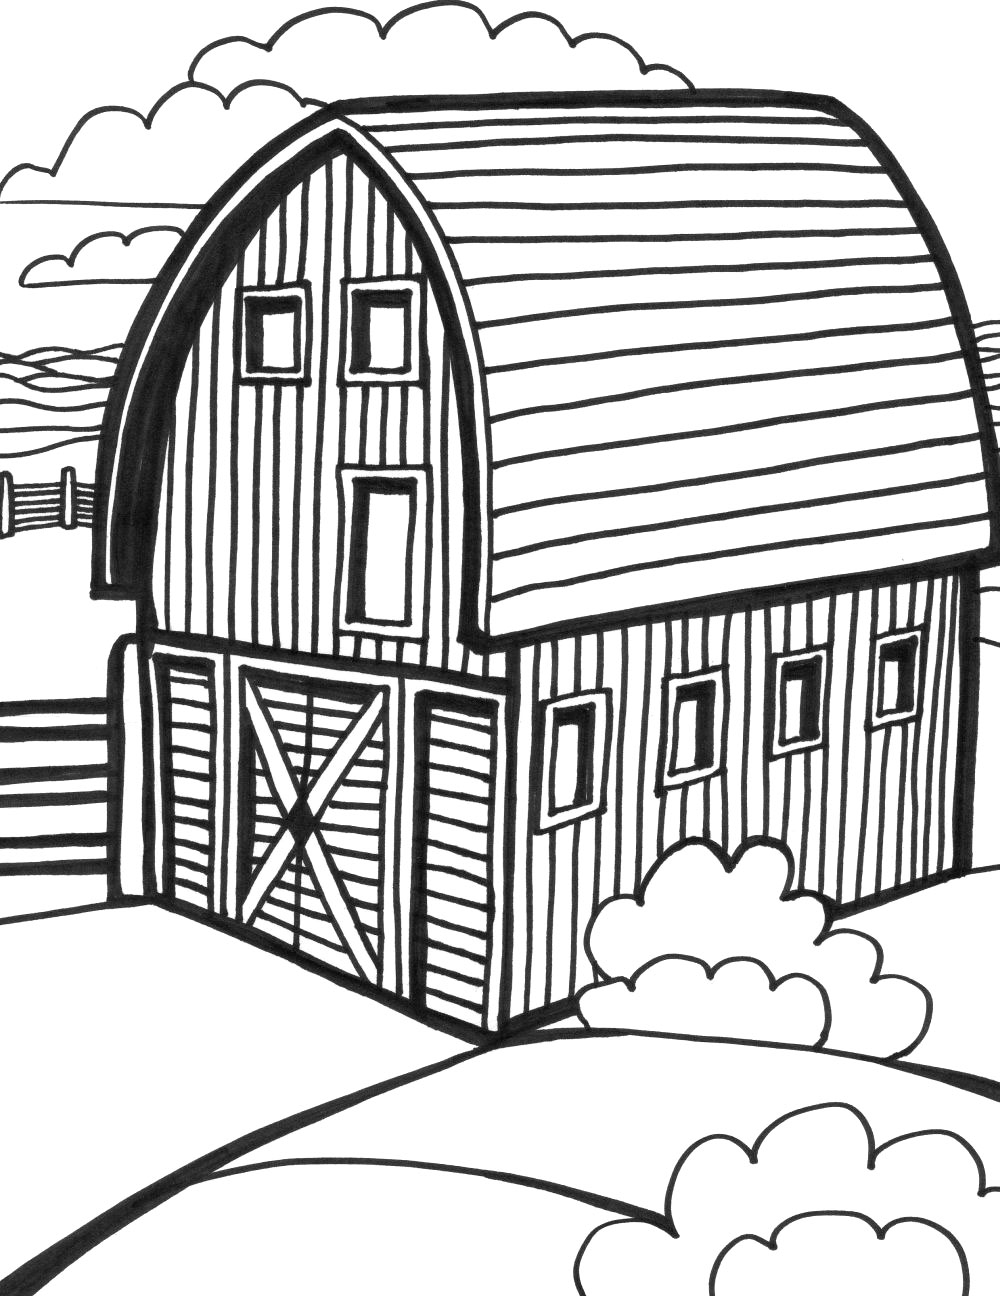 It is a graphic of Adaptable Barn Coloring Sheet